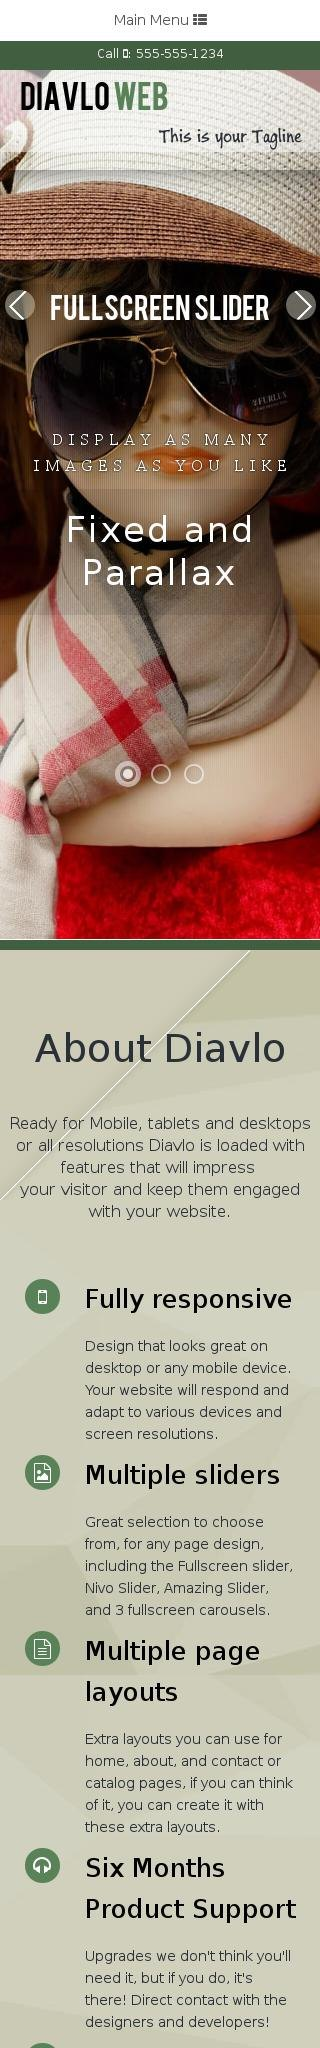 Mobile: Fashion Dreamweaver Template